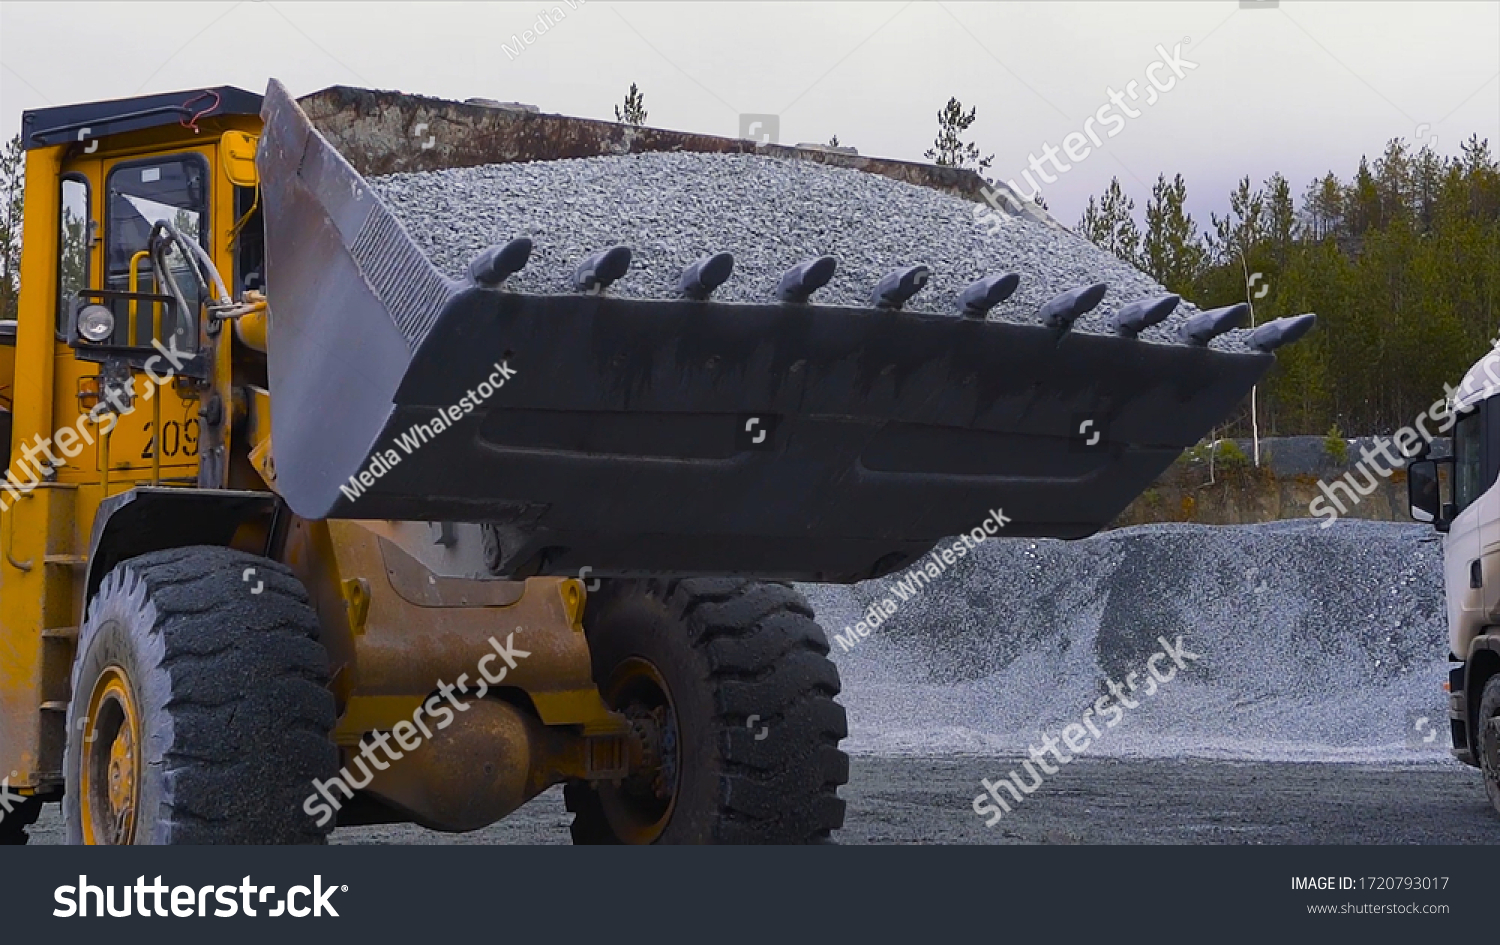 Tractor moves rubble to truck. Stock footage. Excavator-loader rakes rubble from pile at construction site and loads dump truck. Clearing site or mining rubble with heavy transport #1720793017